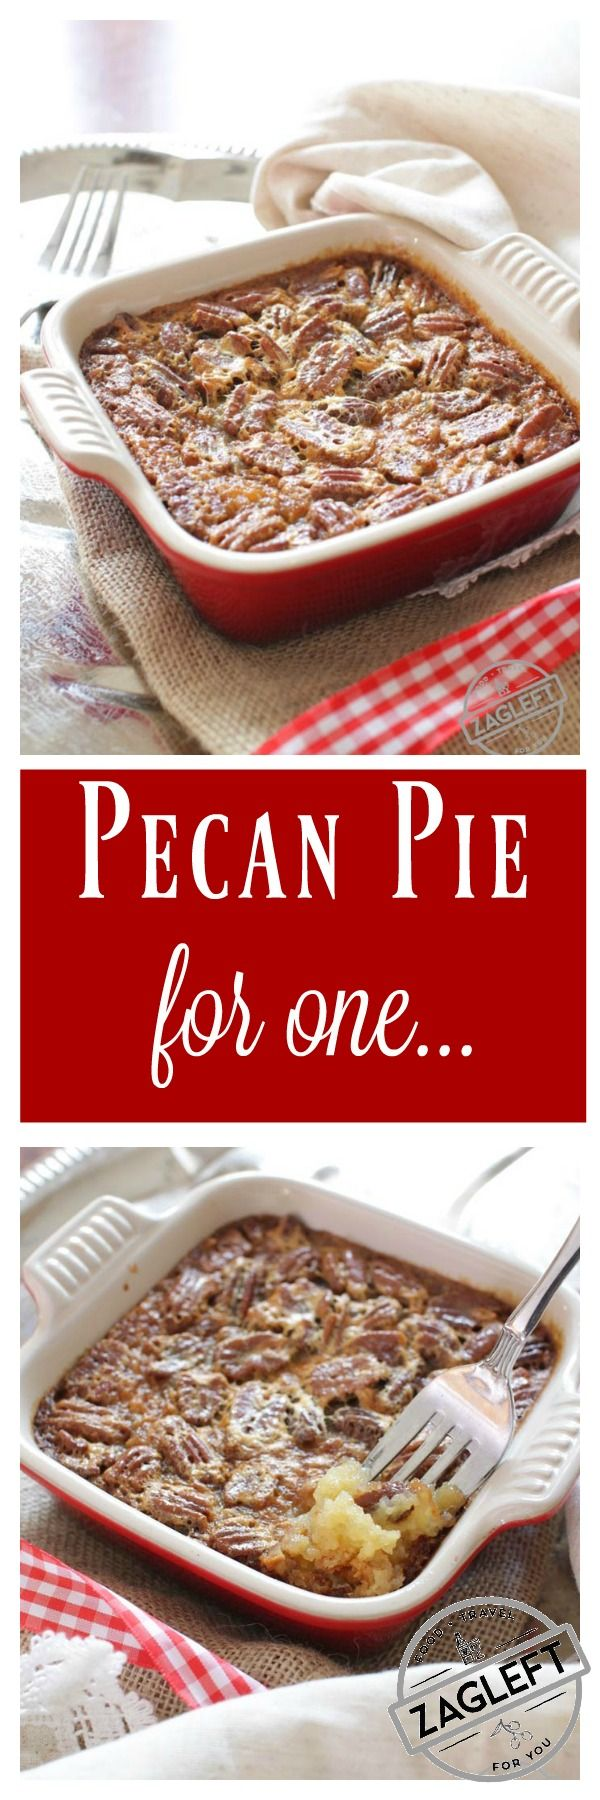 This Pecan Pie For One has all the flavors you love in a pecan pie. It's made with a buttery shortbread crust and a rich, pecan filled filling. This single serving dessert is perfectly sweet, it's filled with pecans and best of all, it's easy to make. | ZagLeft